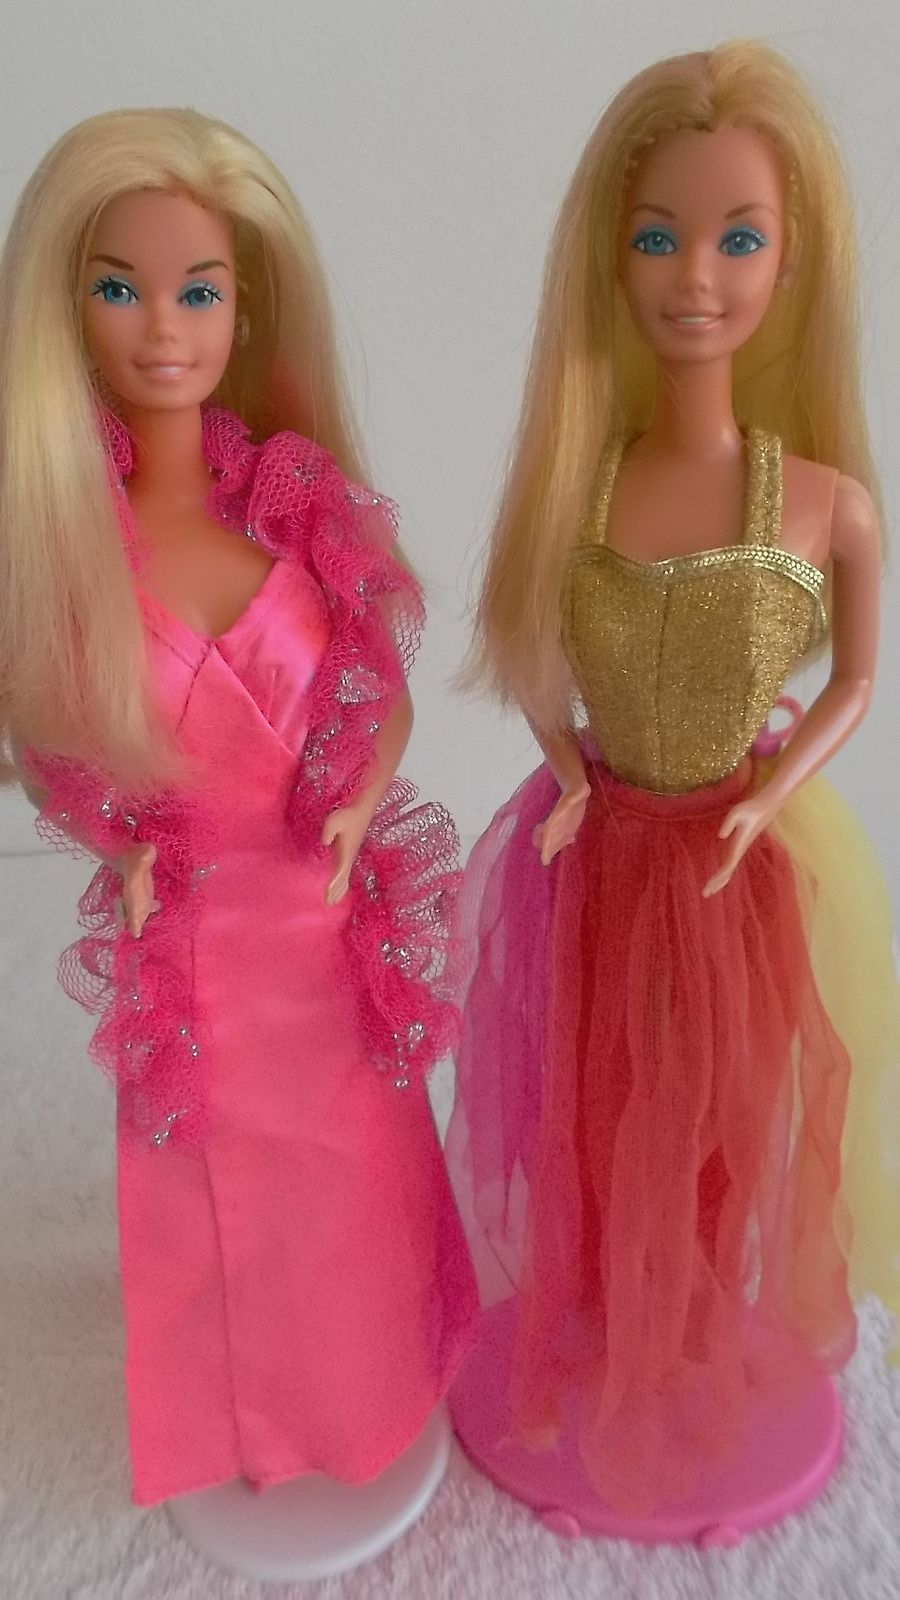 Superstar Barbie 1976 And Fashion Photo Barbie 1977 In 2020 Old